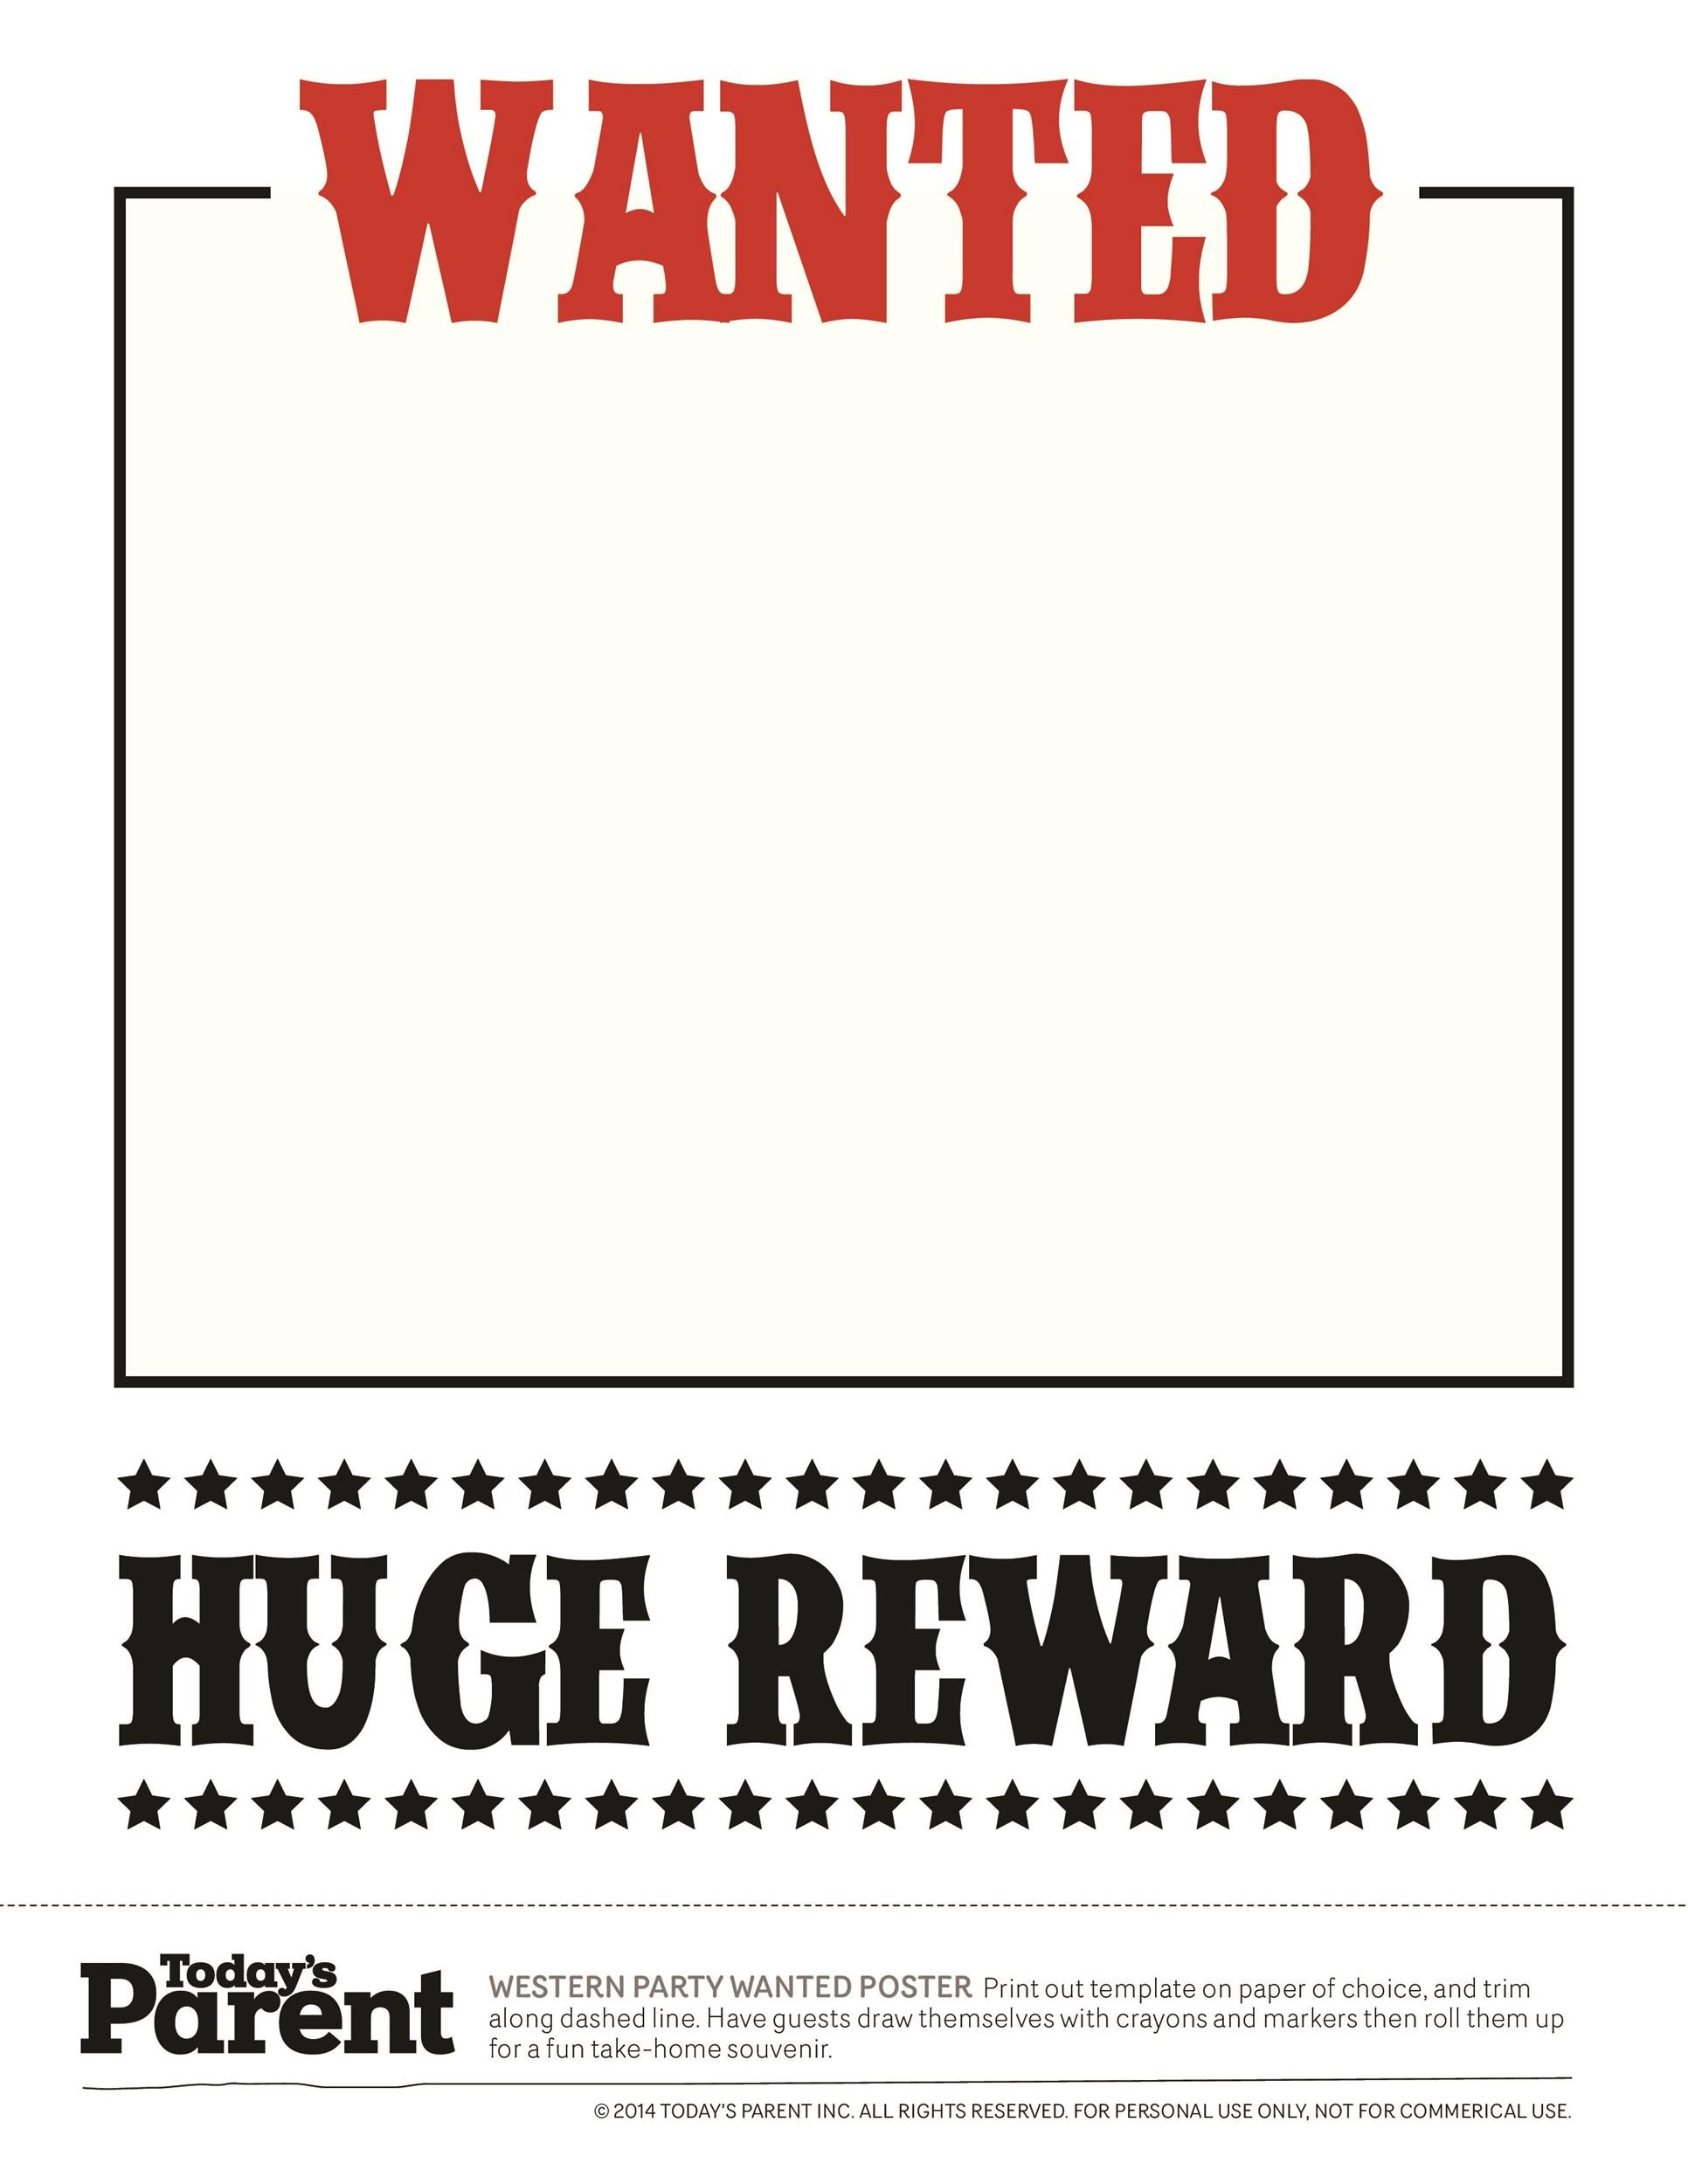 Old West Most Wanted Poster 01